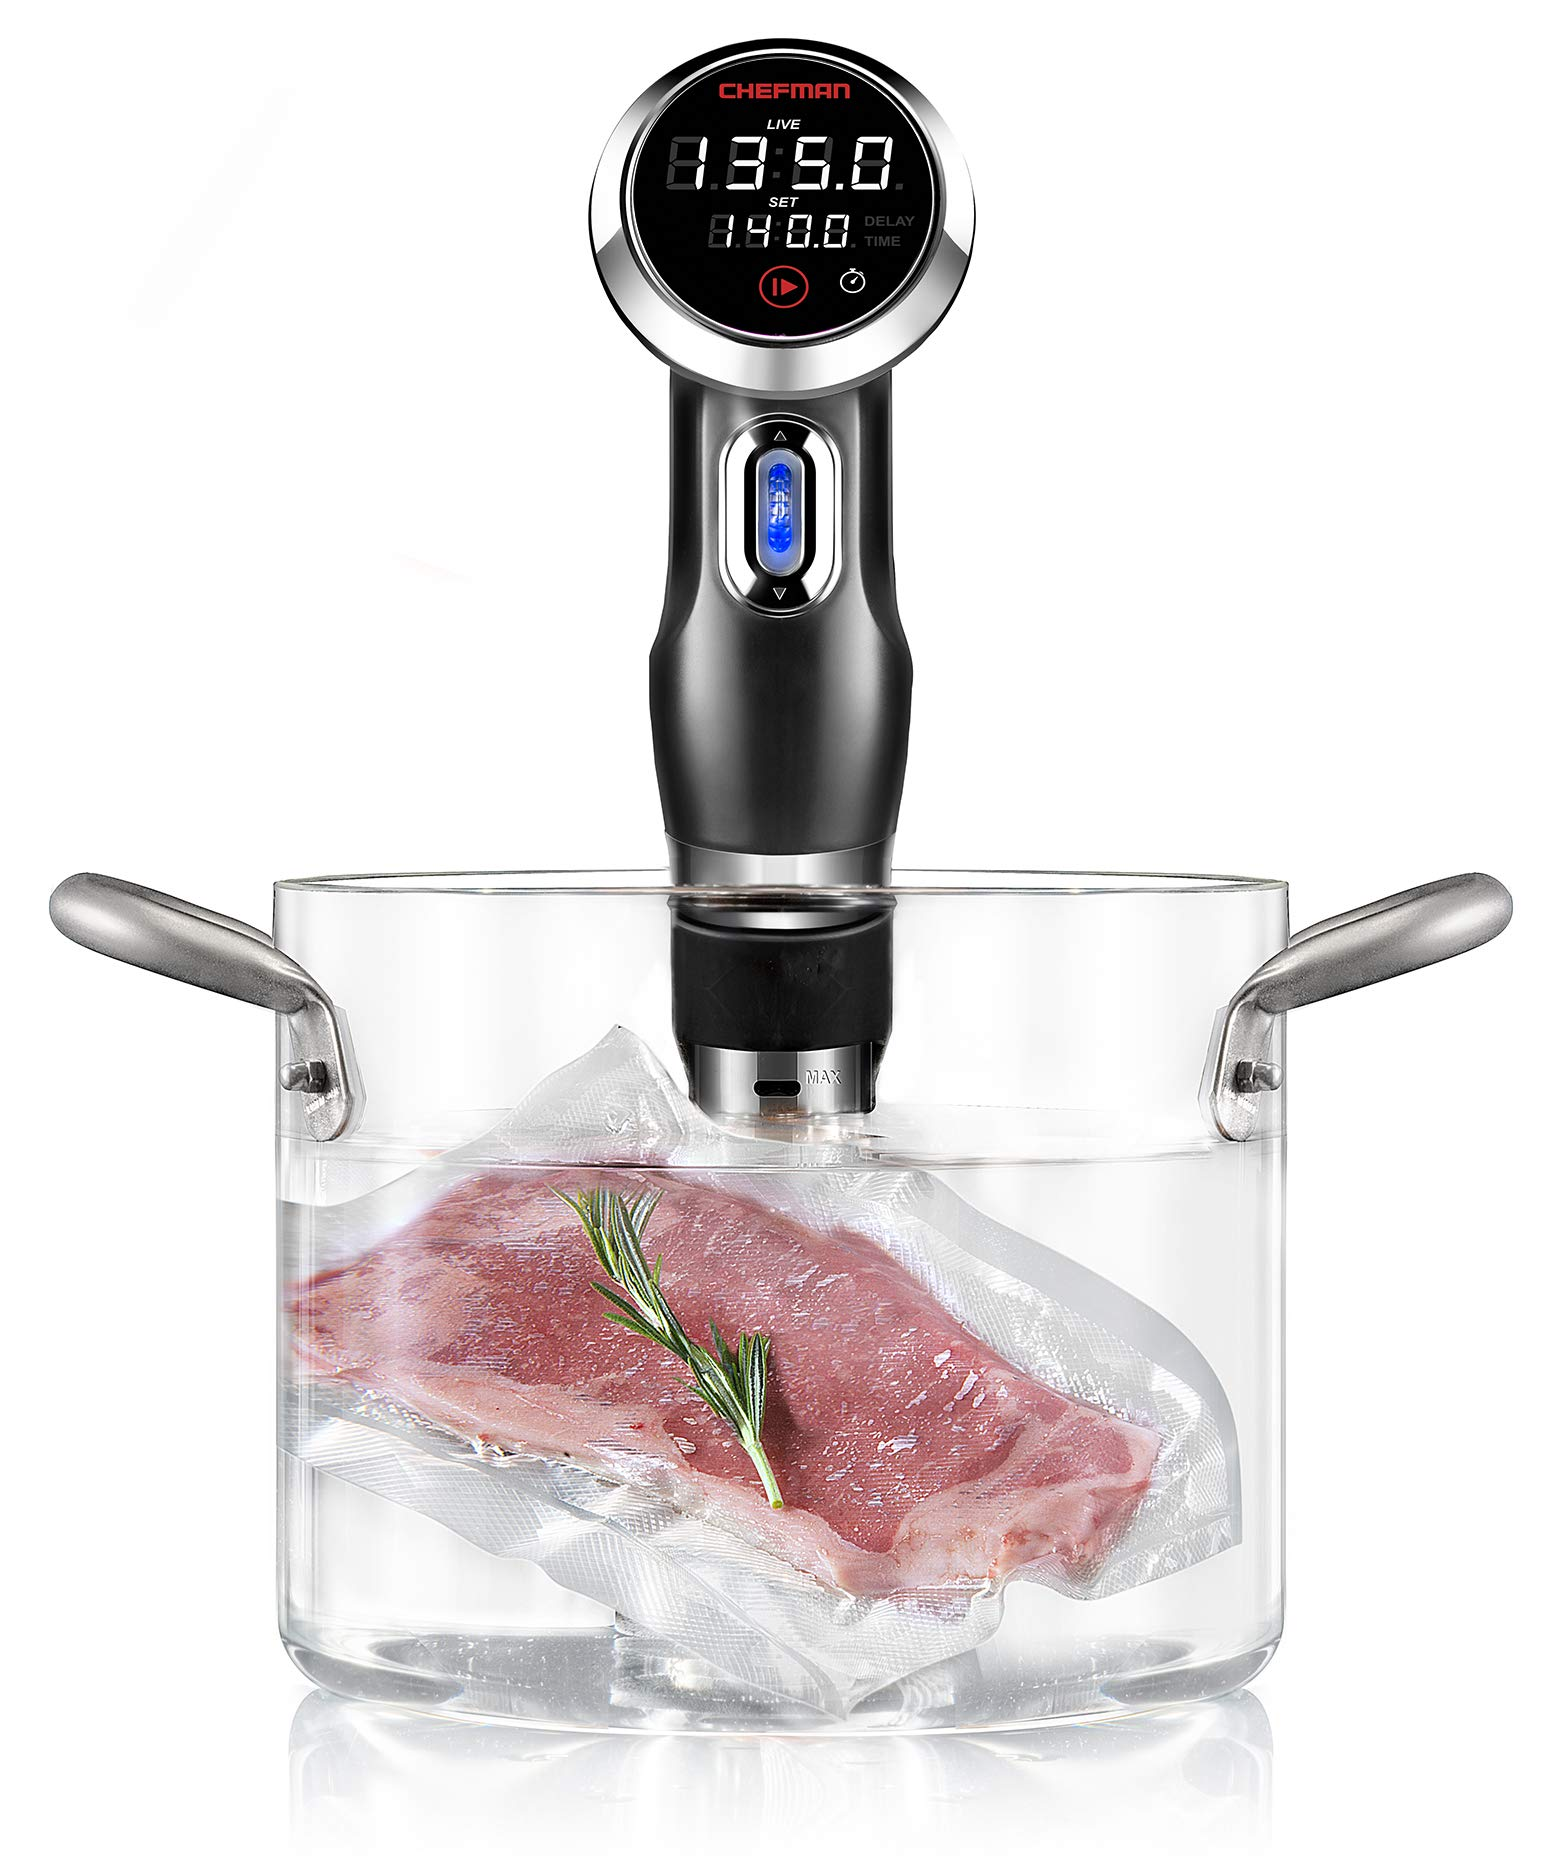 Chefman RJ39-V2-BLK Sous Vide Thermal Immersion Circulator Pod with Accurate Temp and Time, Crystal Clear Display and Intuitive Controls, Powerful 1000w, Discontinued